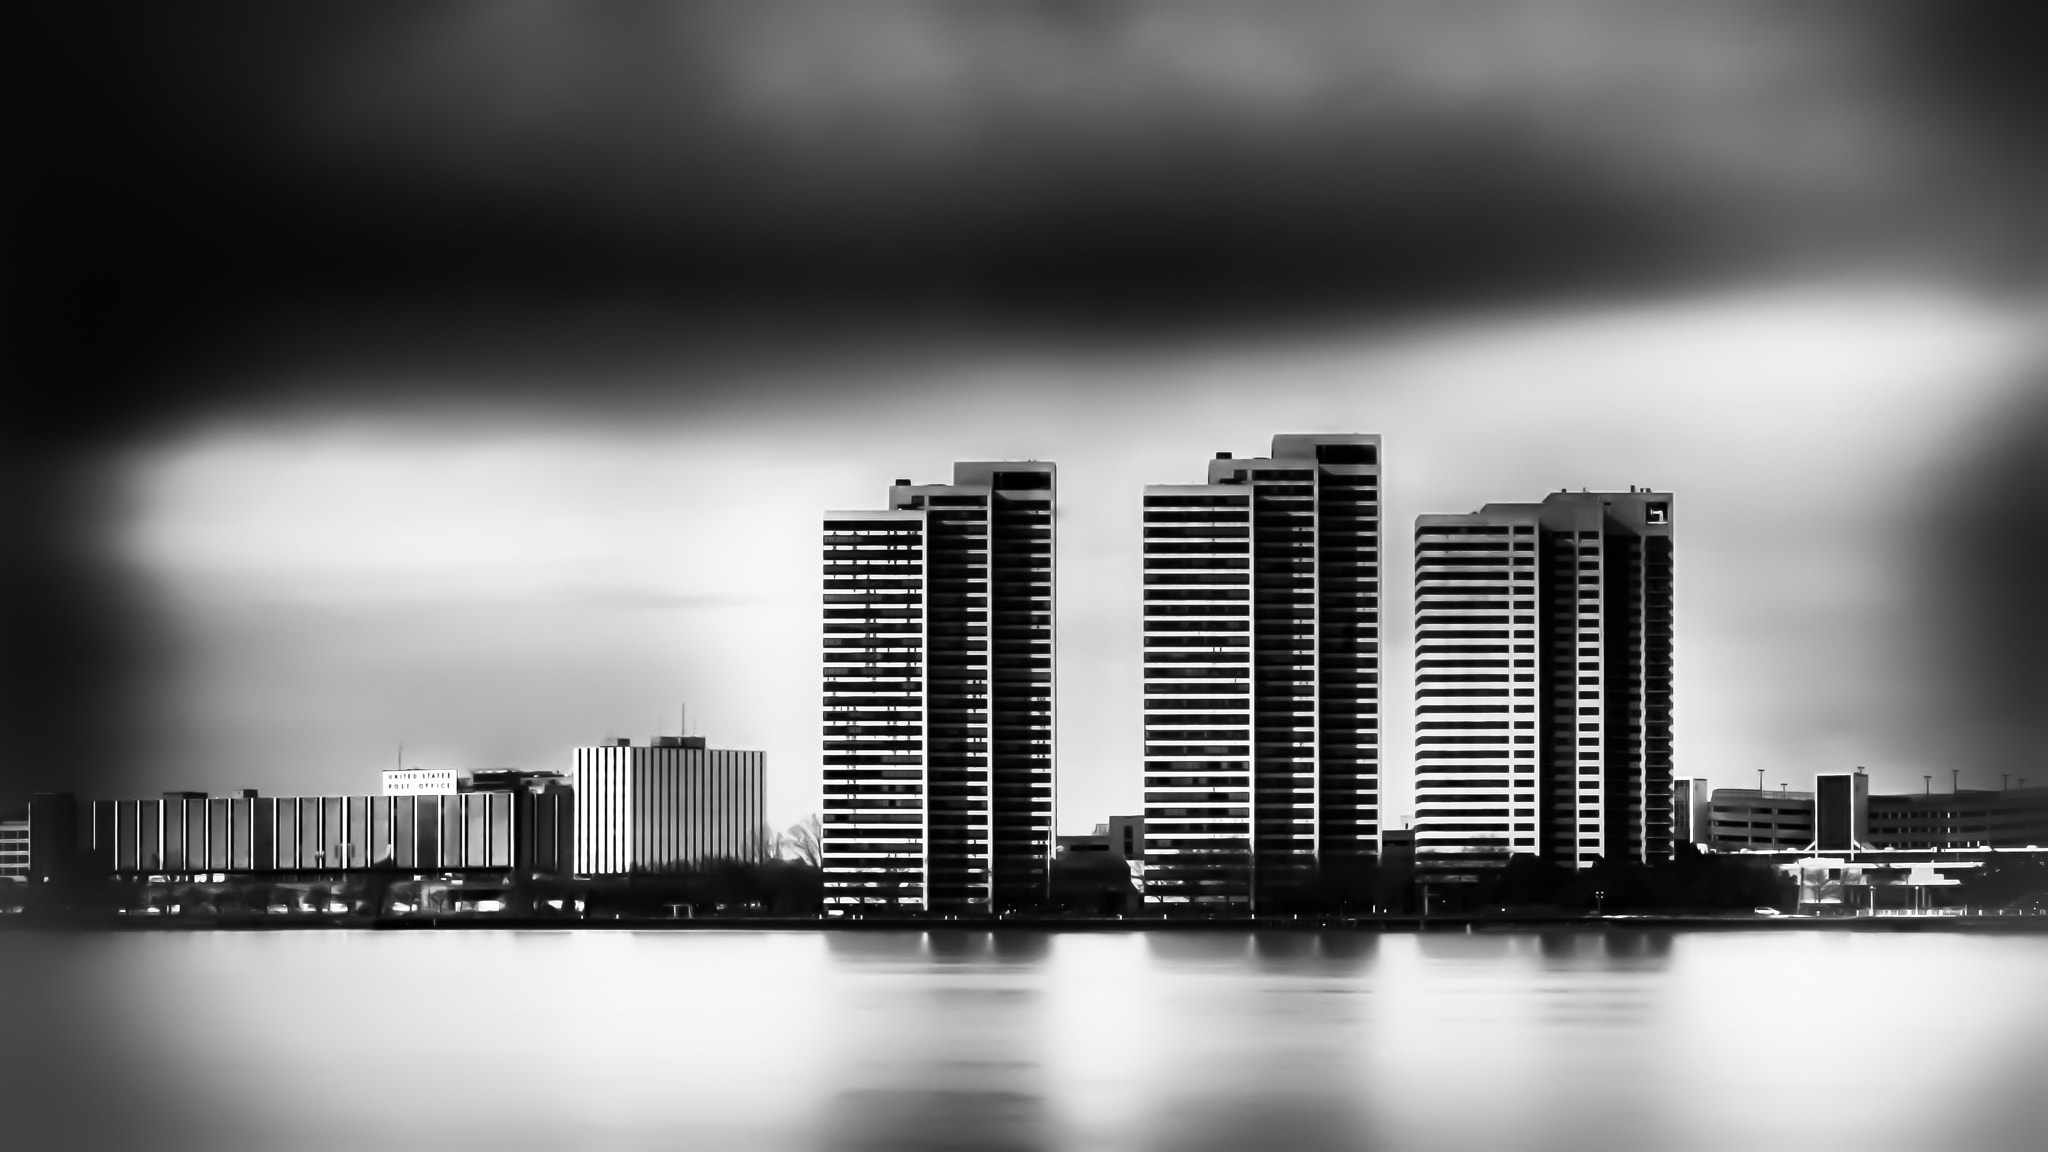 Photograph Riverfront Towers - High Contrast by Steven Wosina on 500px